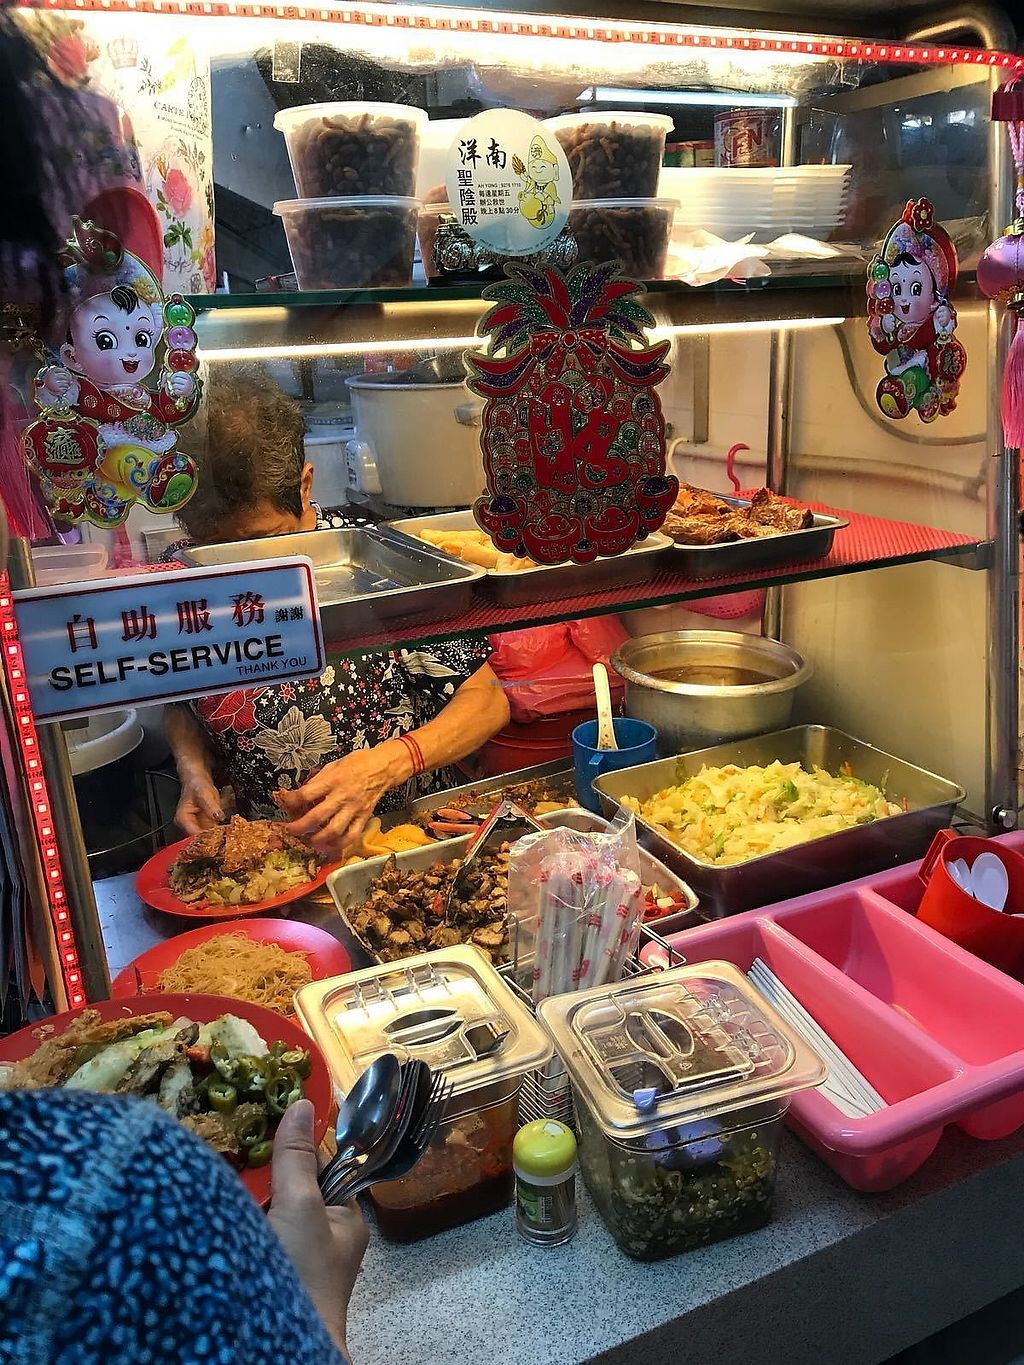 "Photo of Miao Guan Vegetarian Stall  by <a href=""/members/profile/CherylQuincy"">CherylQuincy</a> <br/>Food prep  <br/> February 10, 2018  - <a href='/contact/abuse/image/91204/357128'>Report</a>"